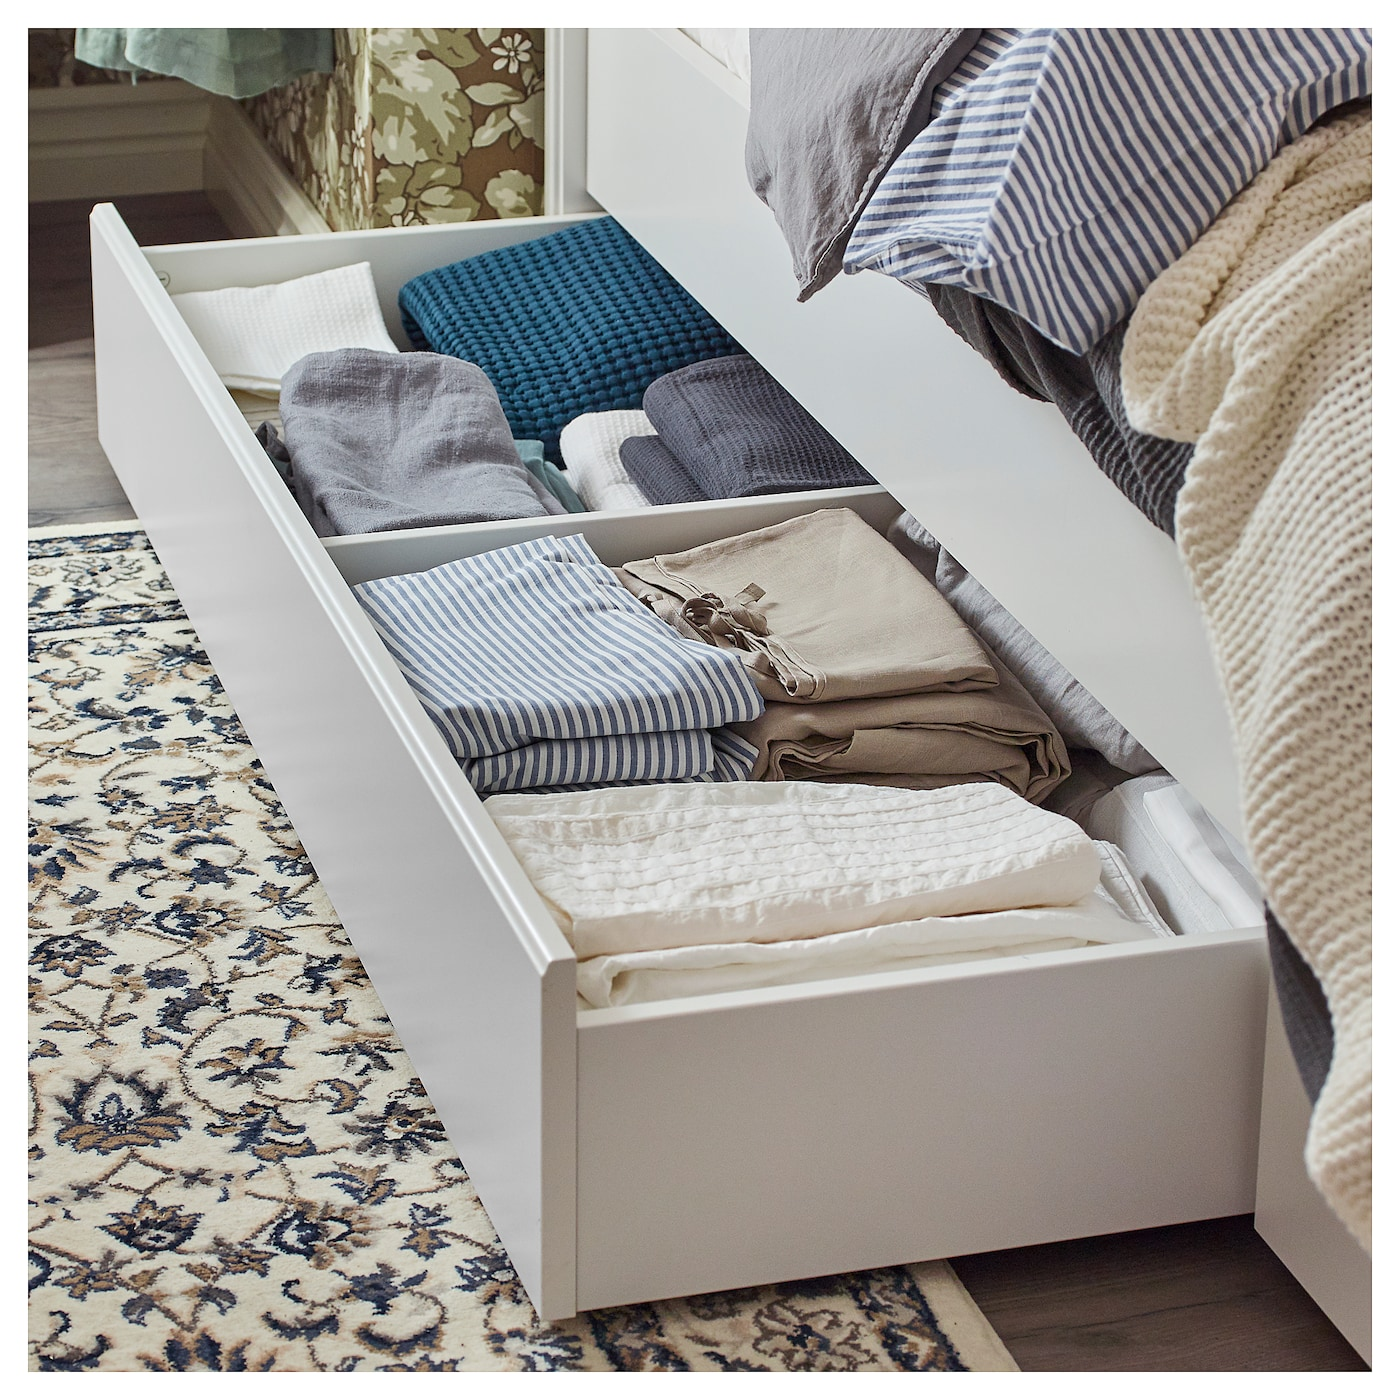 Songesand Bed Storage Box Set Of 2 White Full Double Twin